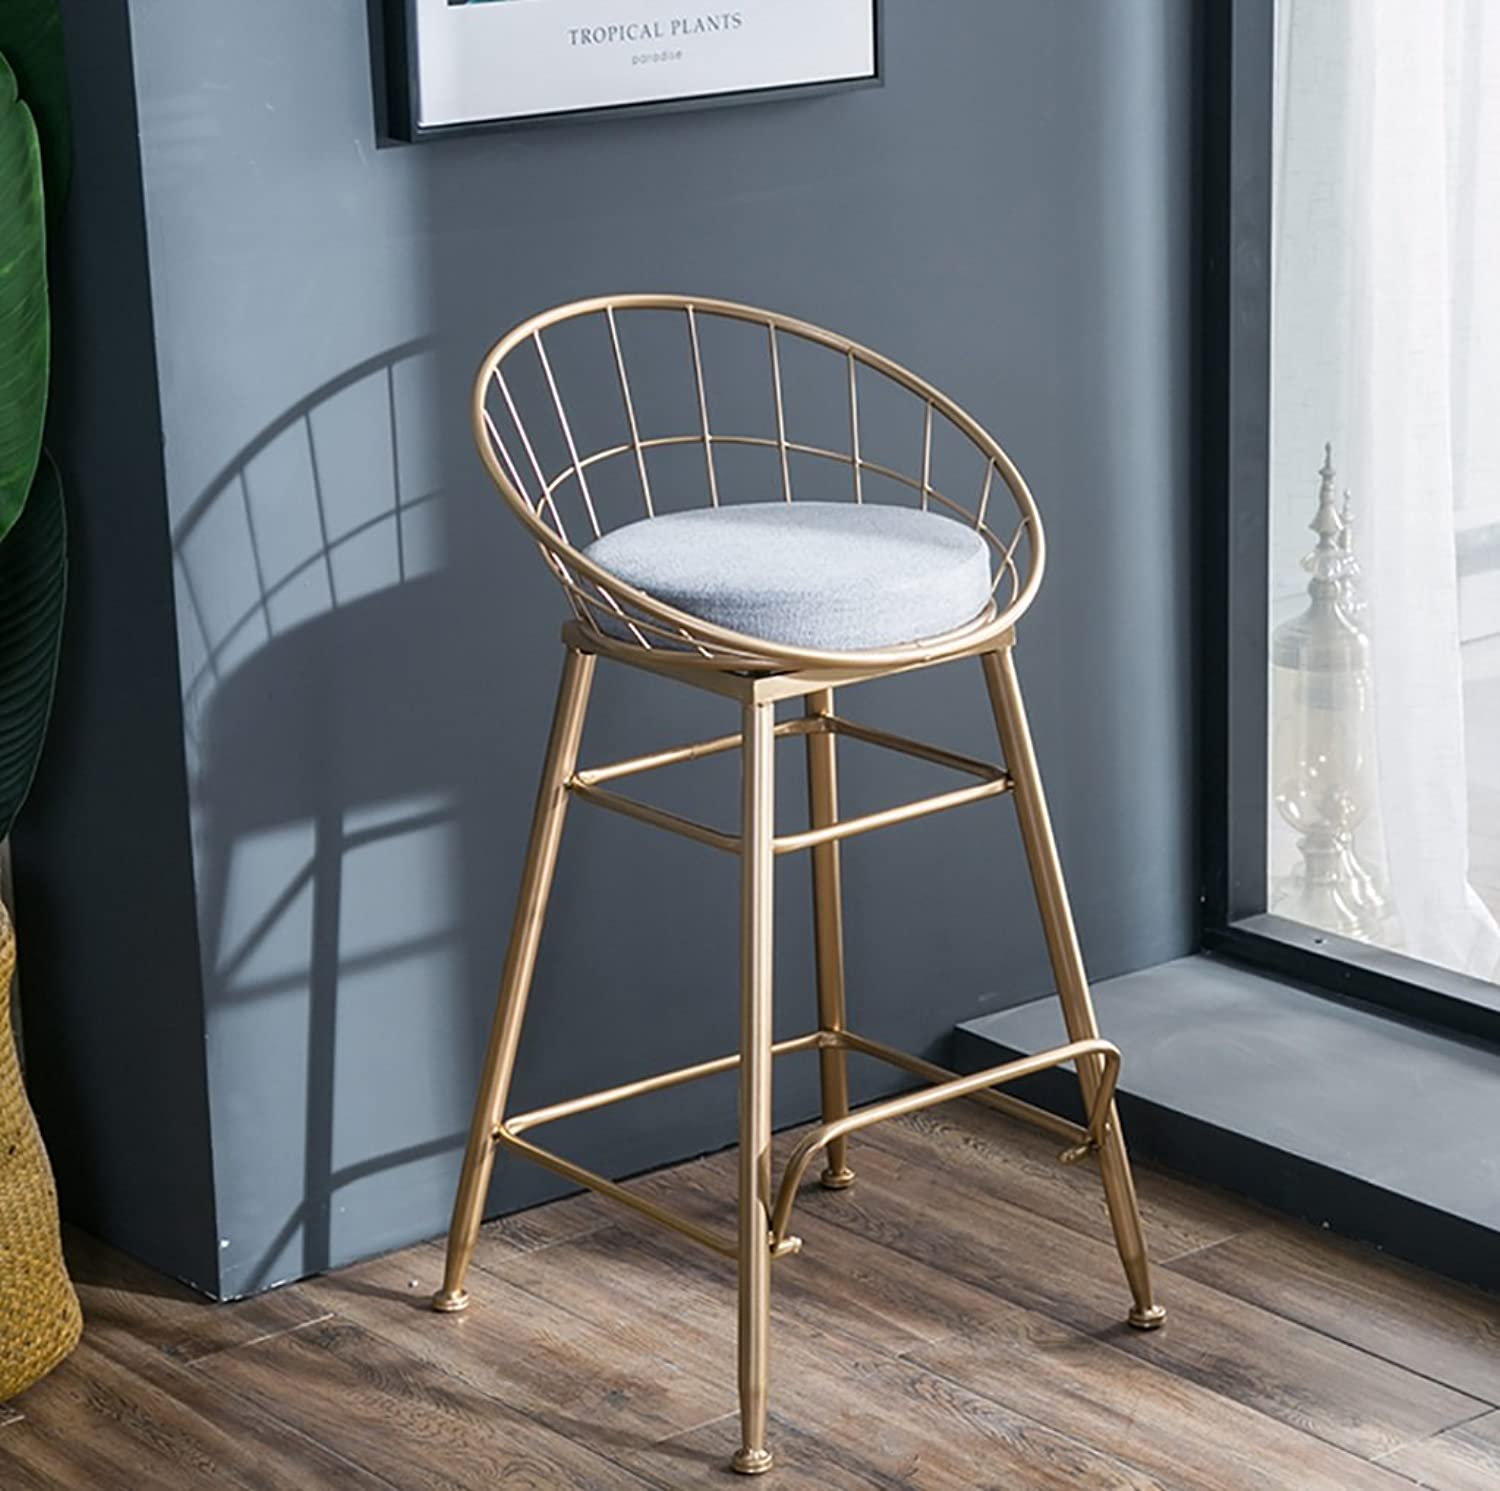 High Stool Nordic Metal Bar Stools, Modern gold Dining Room Home High Stool,Creative Thick Cushion Iron Bar Cafe Chair Sun Lounge Chair,Strong Bearing Capacity Boutique (Size   47  47  85cm)